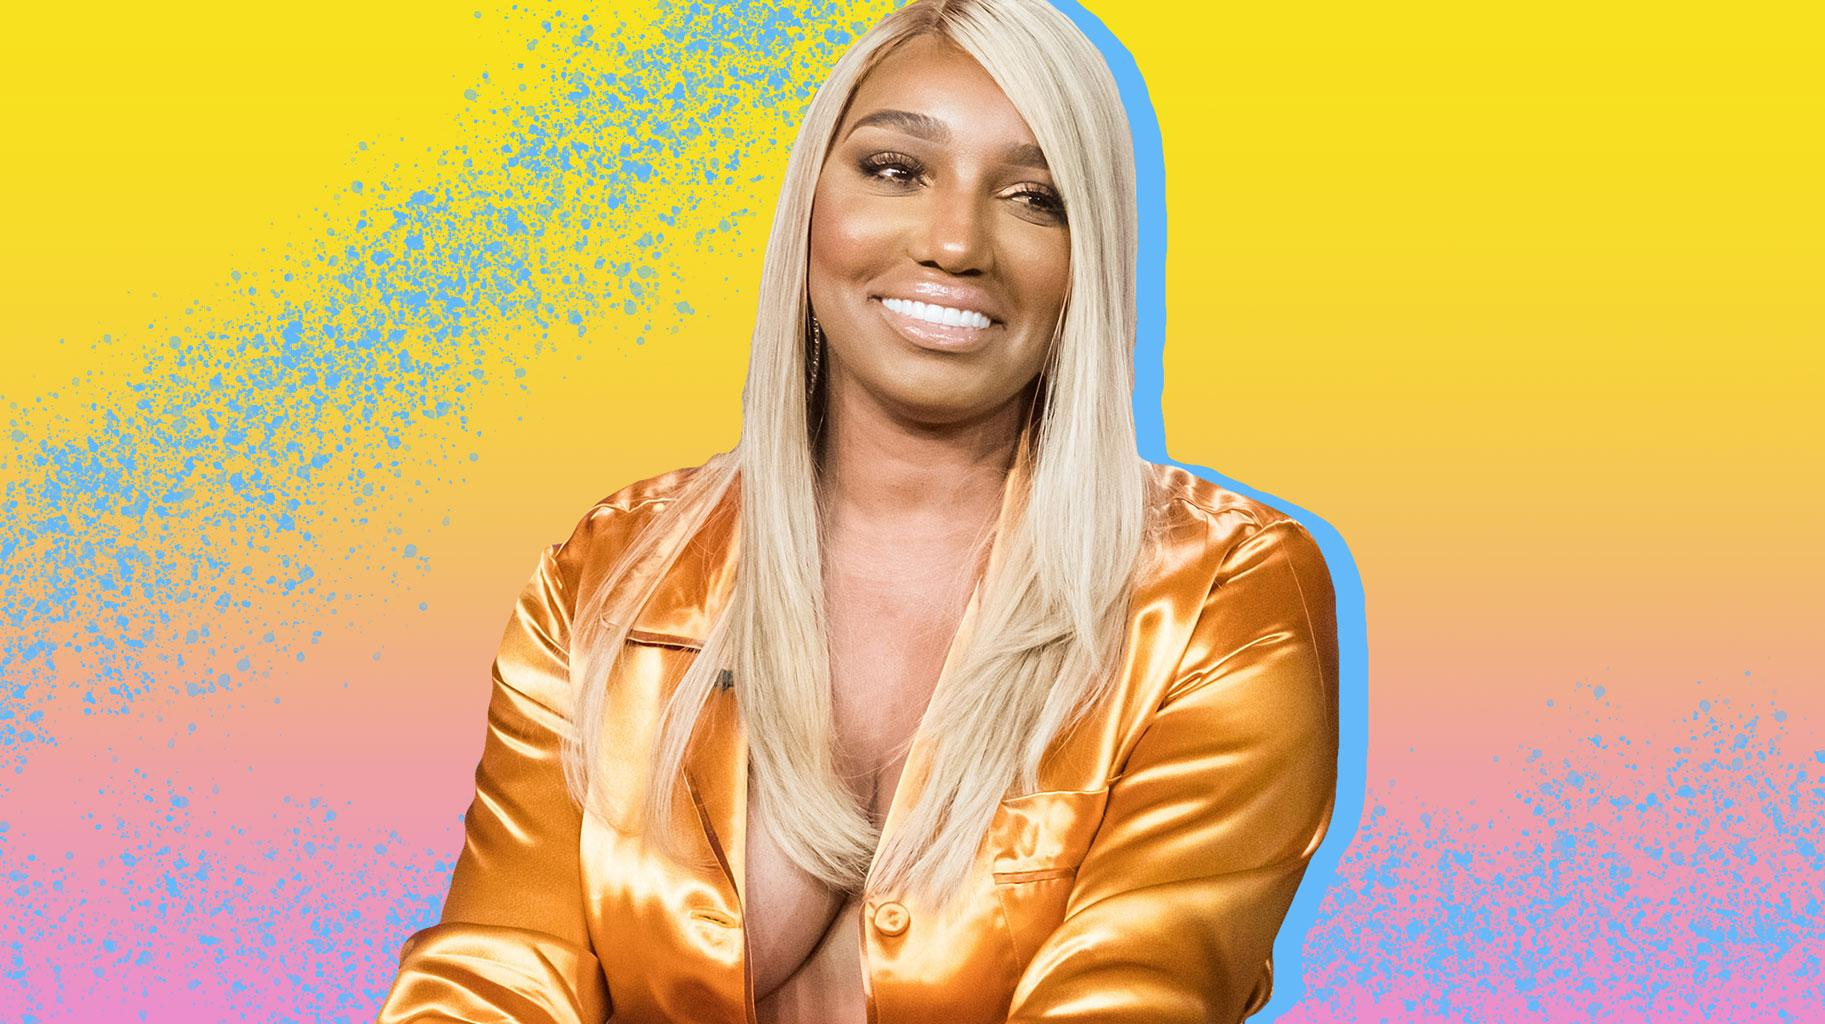 NeNe Leakes Makes Her Fans Say That She's Aging Backwards - See The Photo That Has People Praising Her